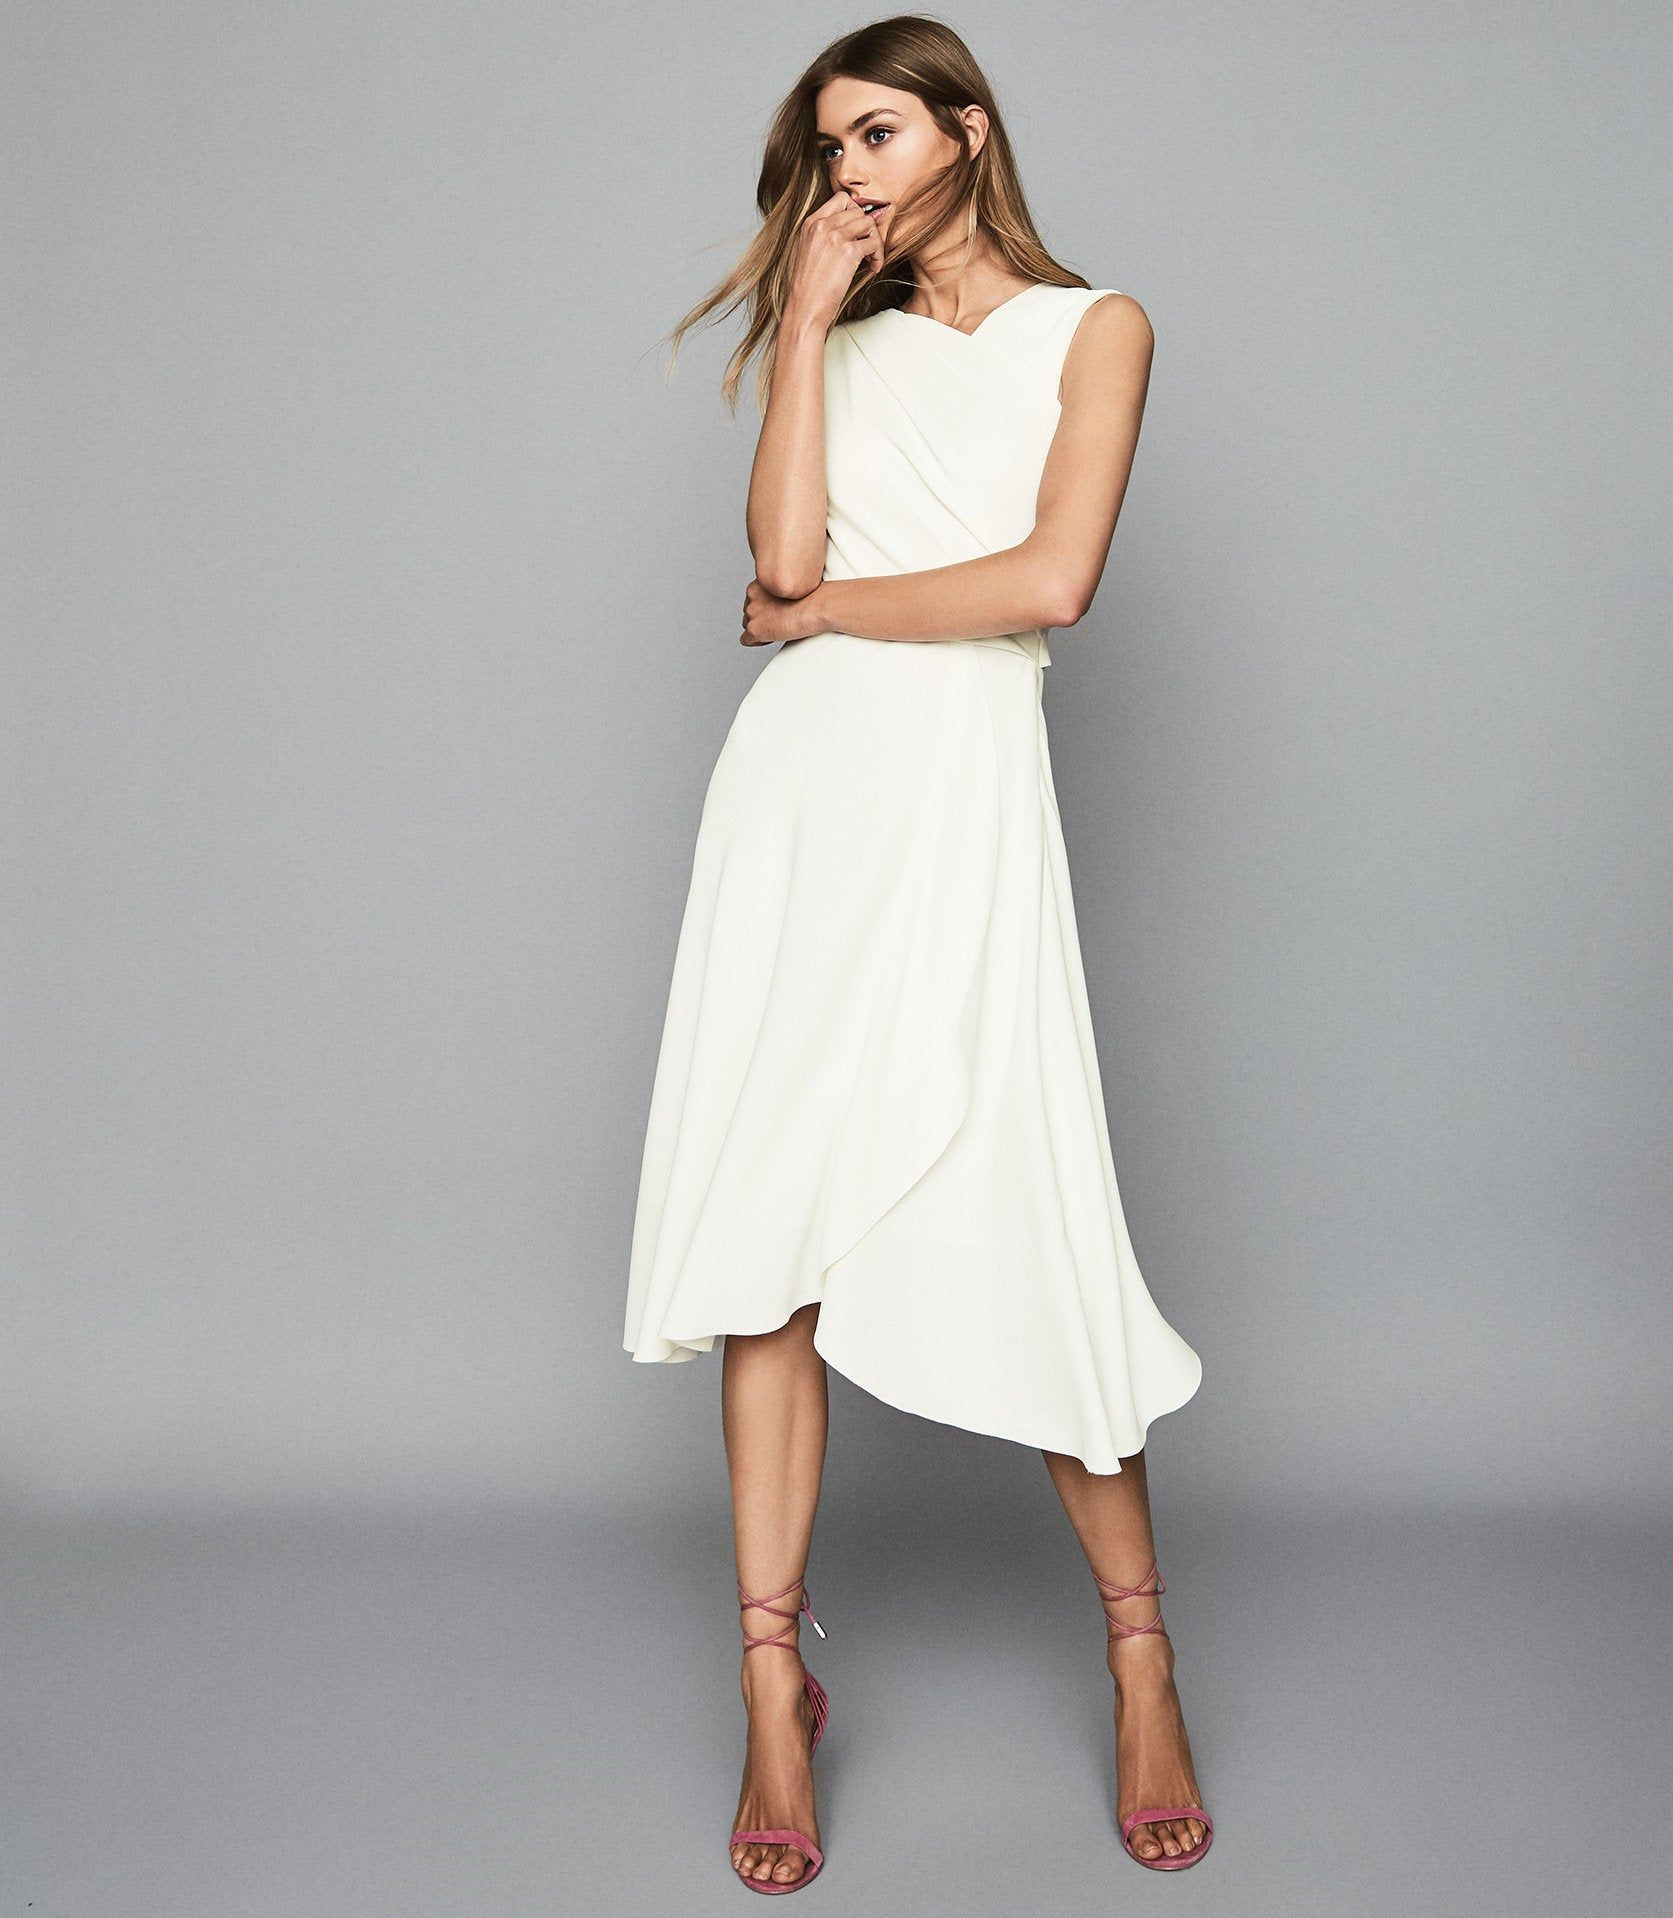 Marling Ivory Wrap Front Midi Dress Reiss Iconic Dresses Trendy Fashion Outfits Dresses [ 1918 x 1673 Pixel ]